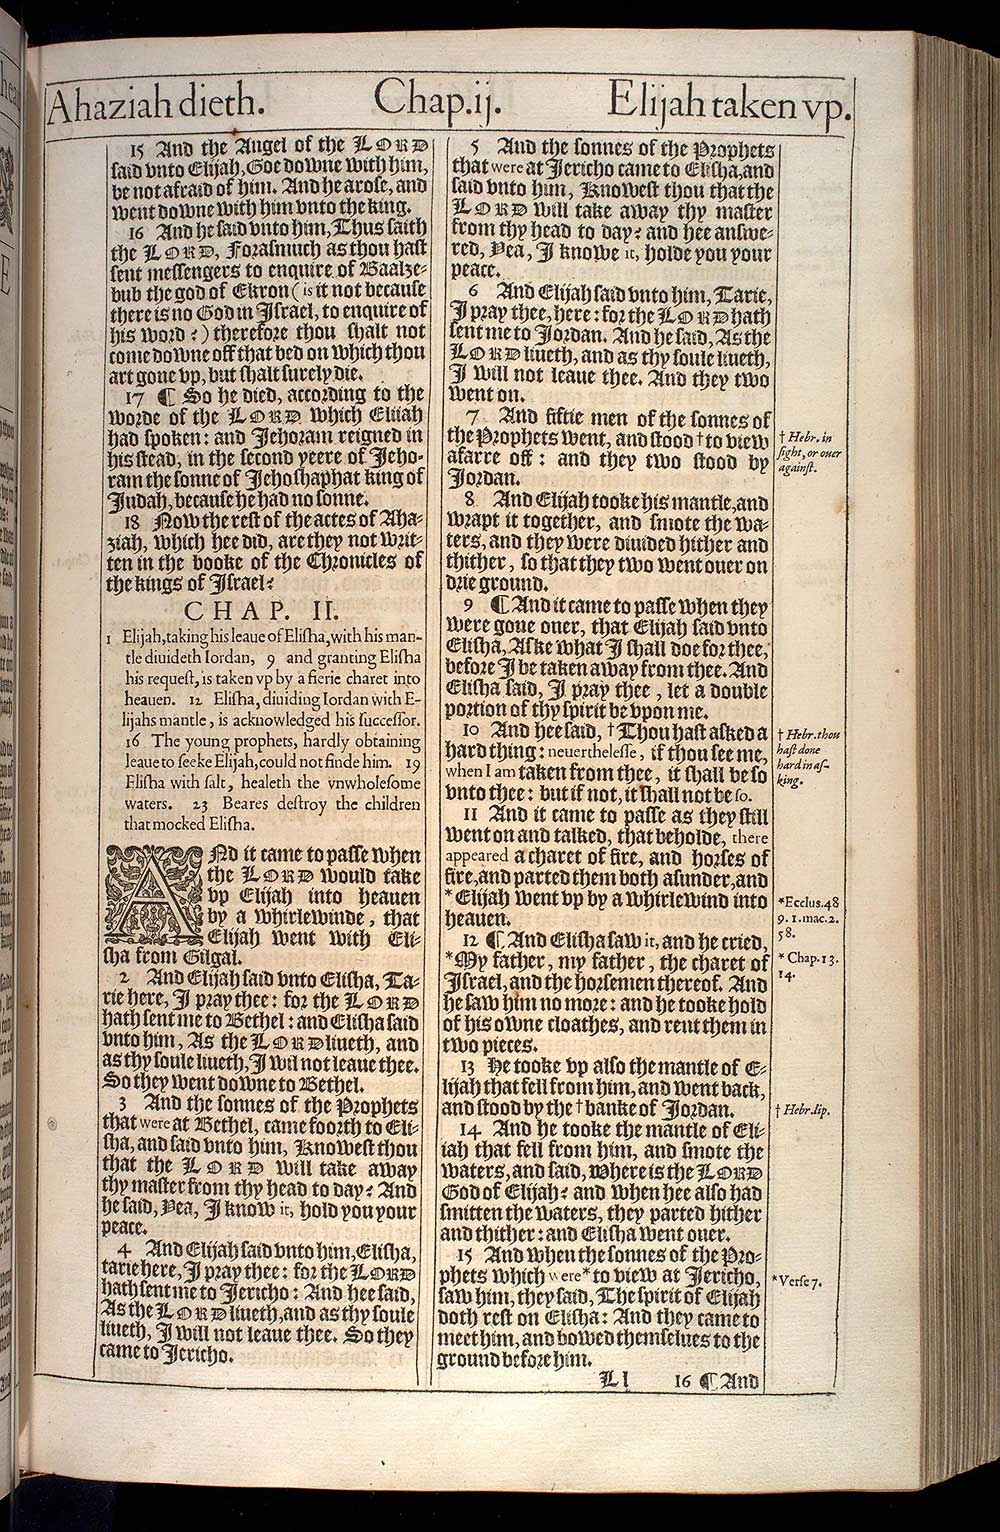 2 Kings Chapter 1 Original 1611 Bible Scan